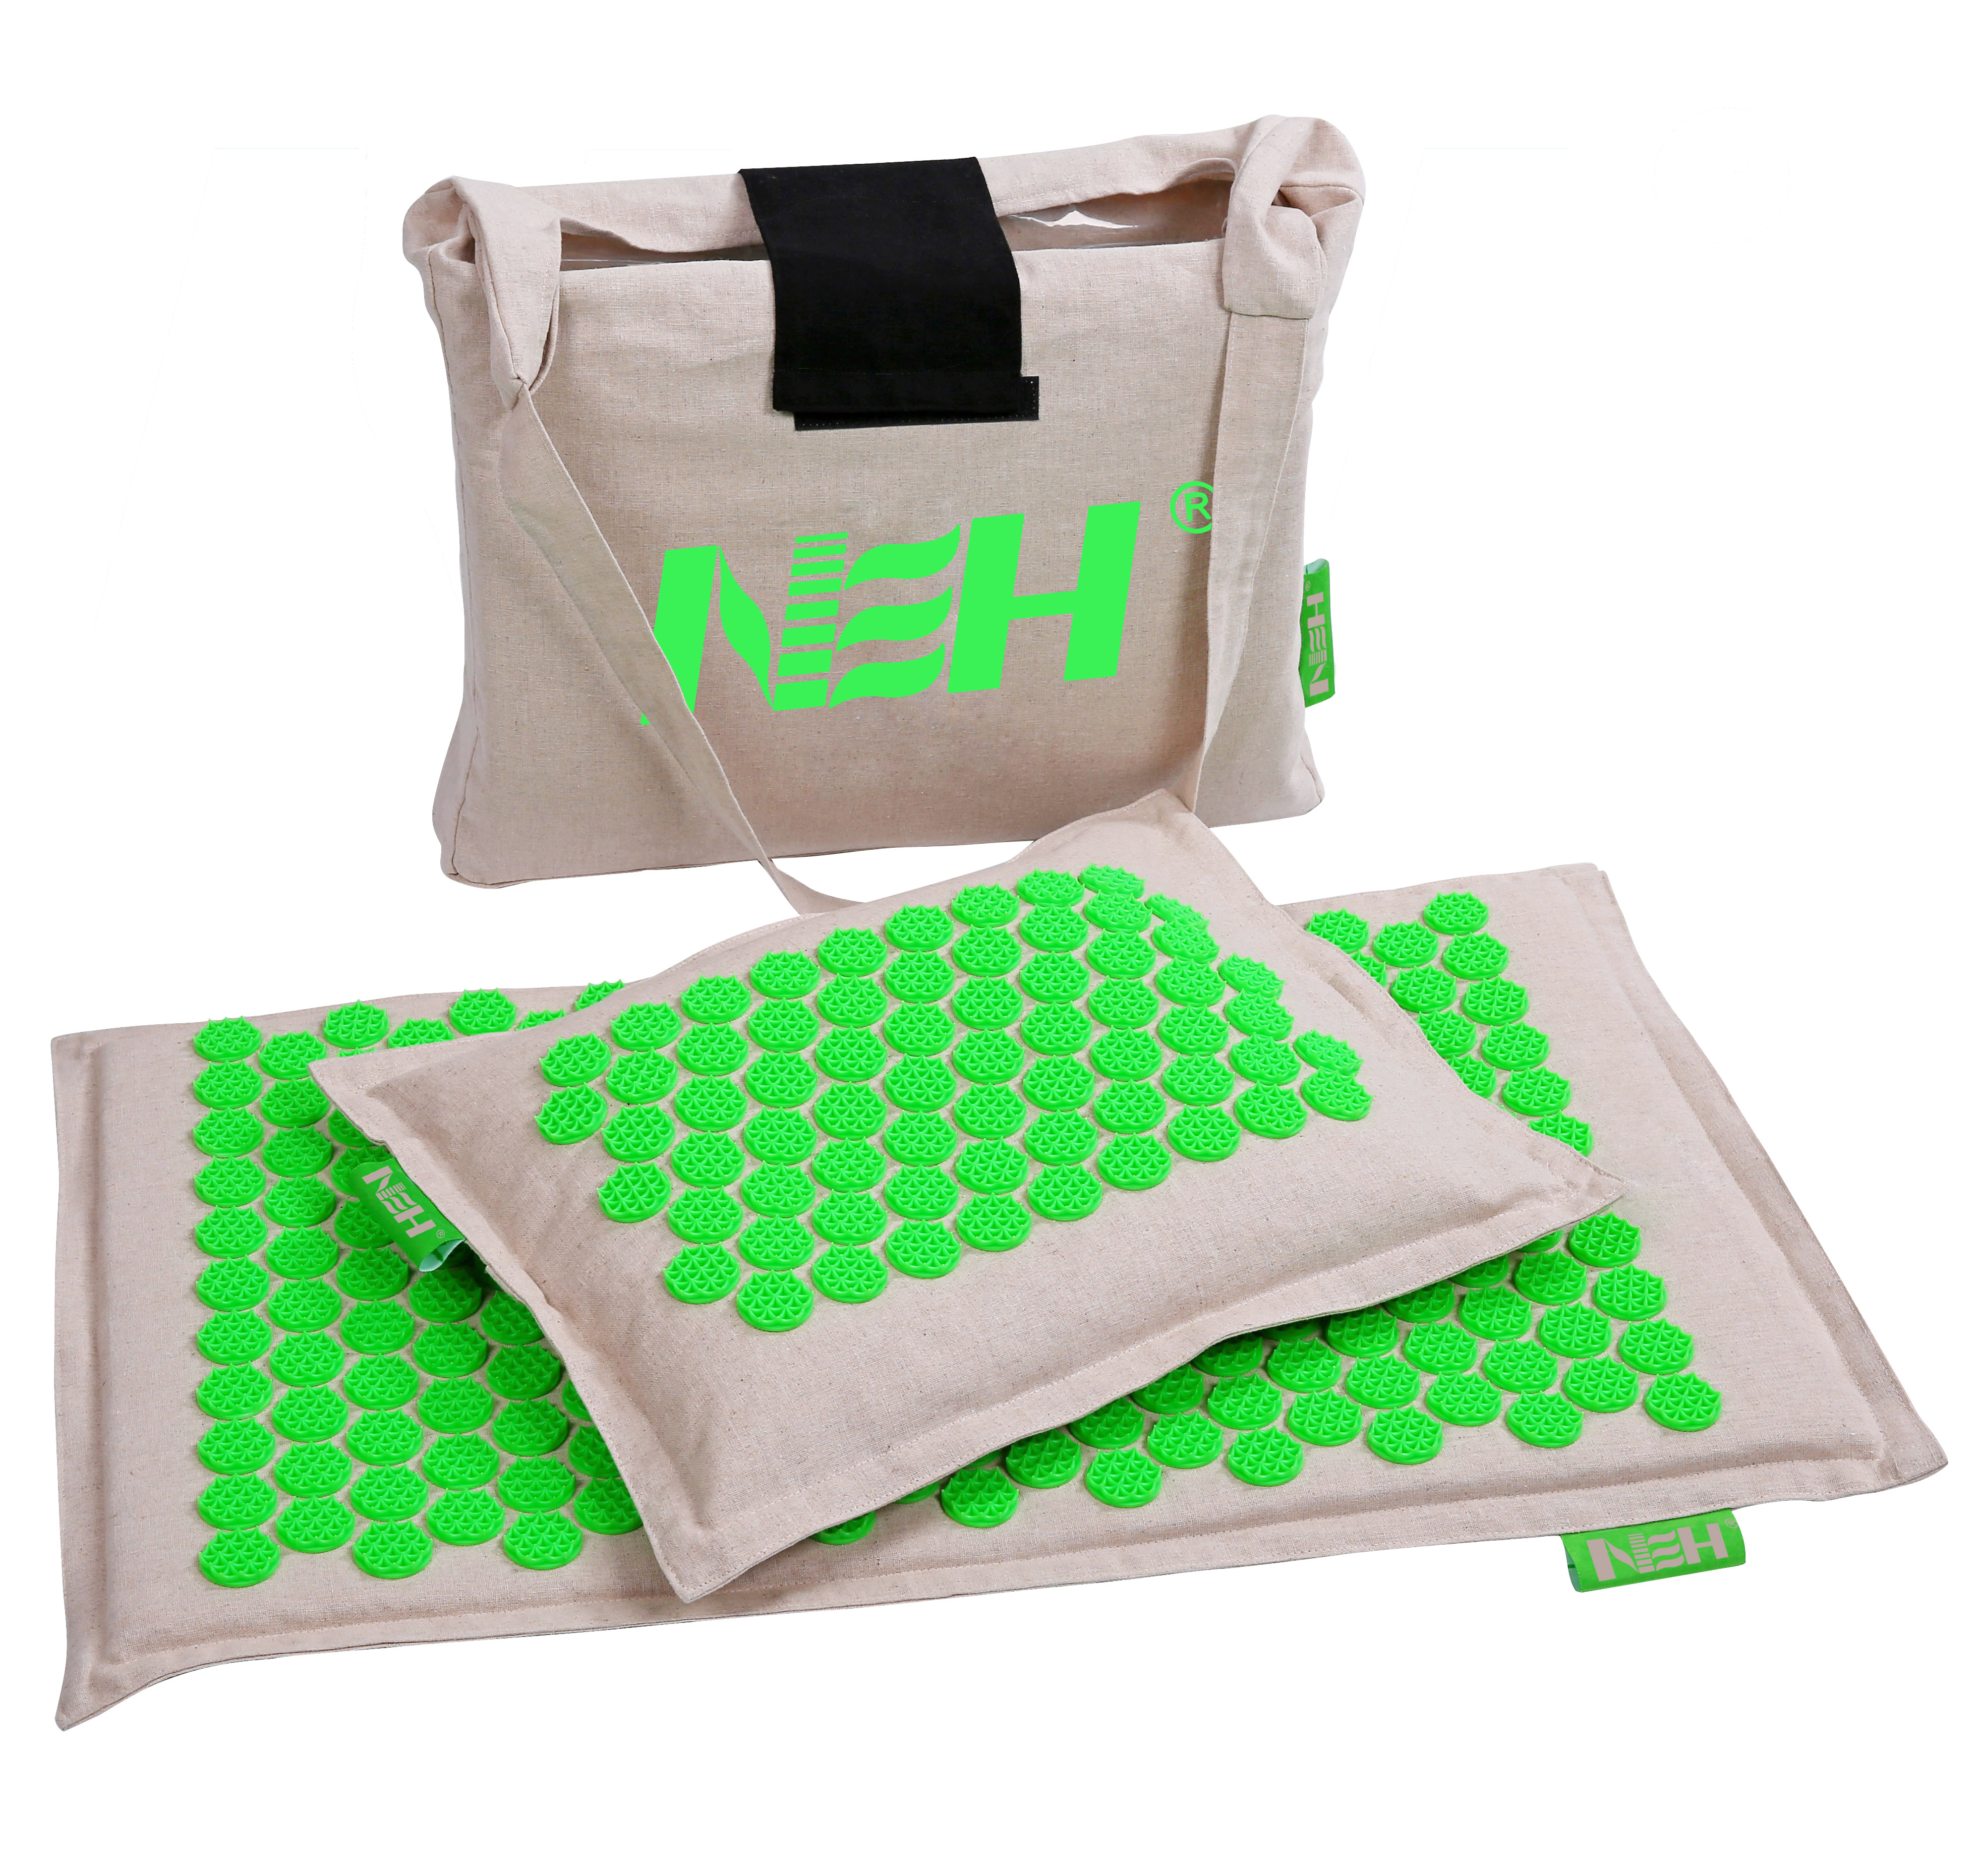 Top Quality Eco Acupressure Massage Mat Natural Organic Linen Cotton for Back and Neck,Acupuncture Mat And Pillow Set with Linen Carry Bag